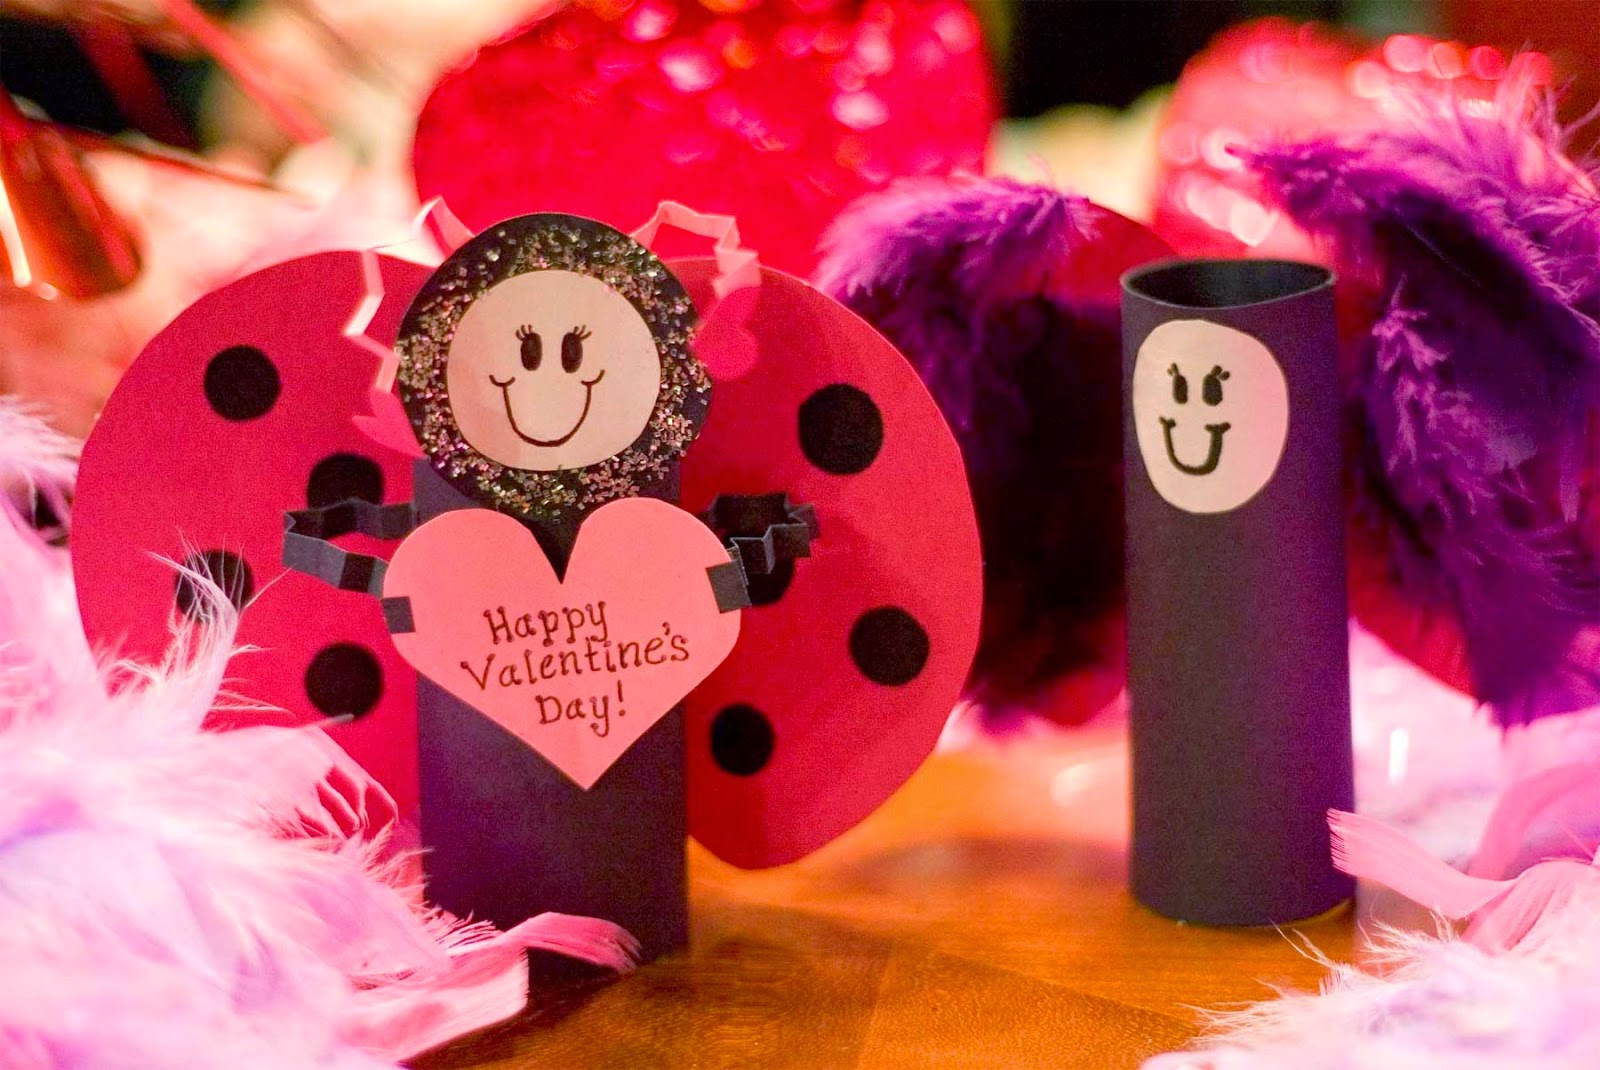 Happy valentines day ideas pictures